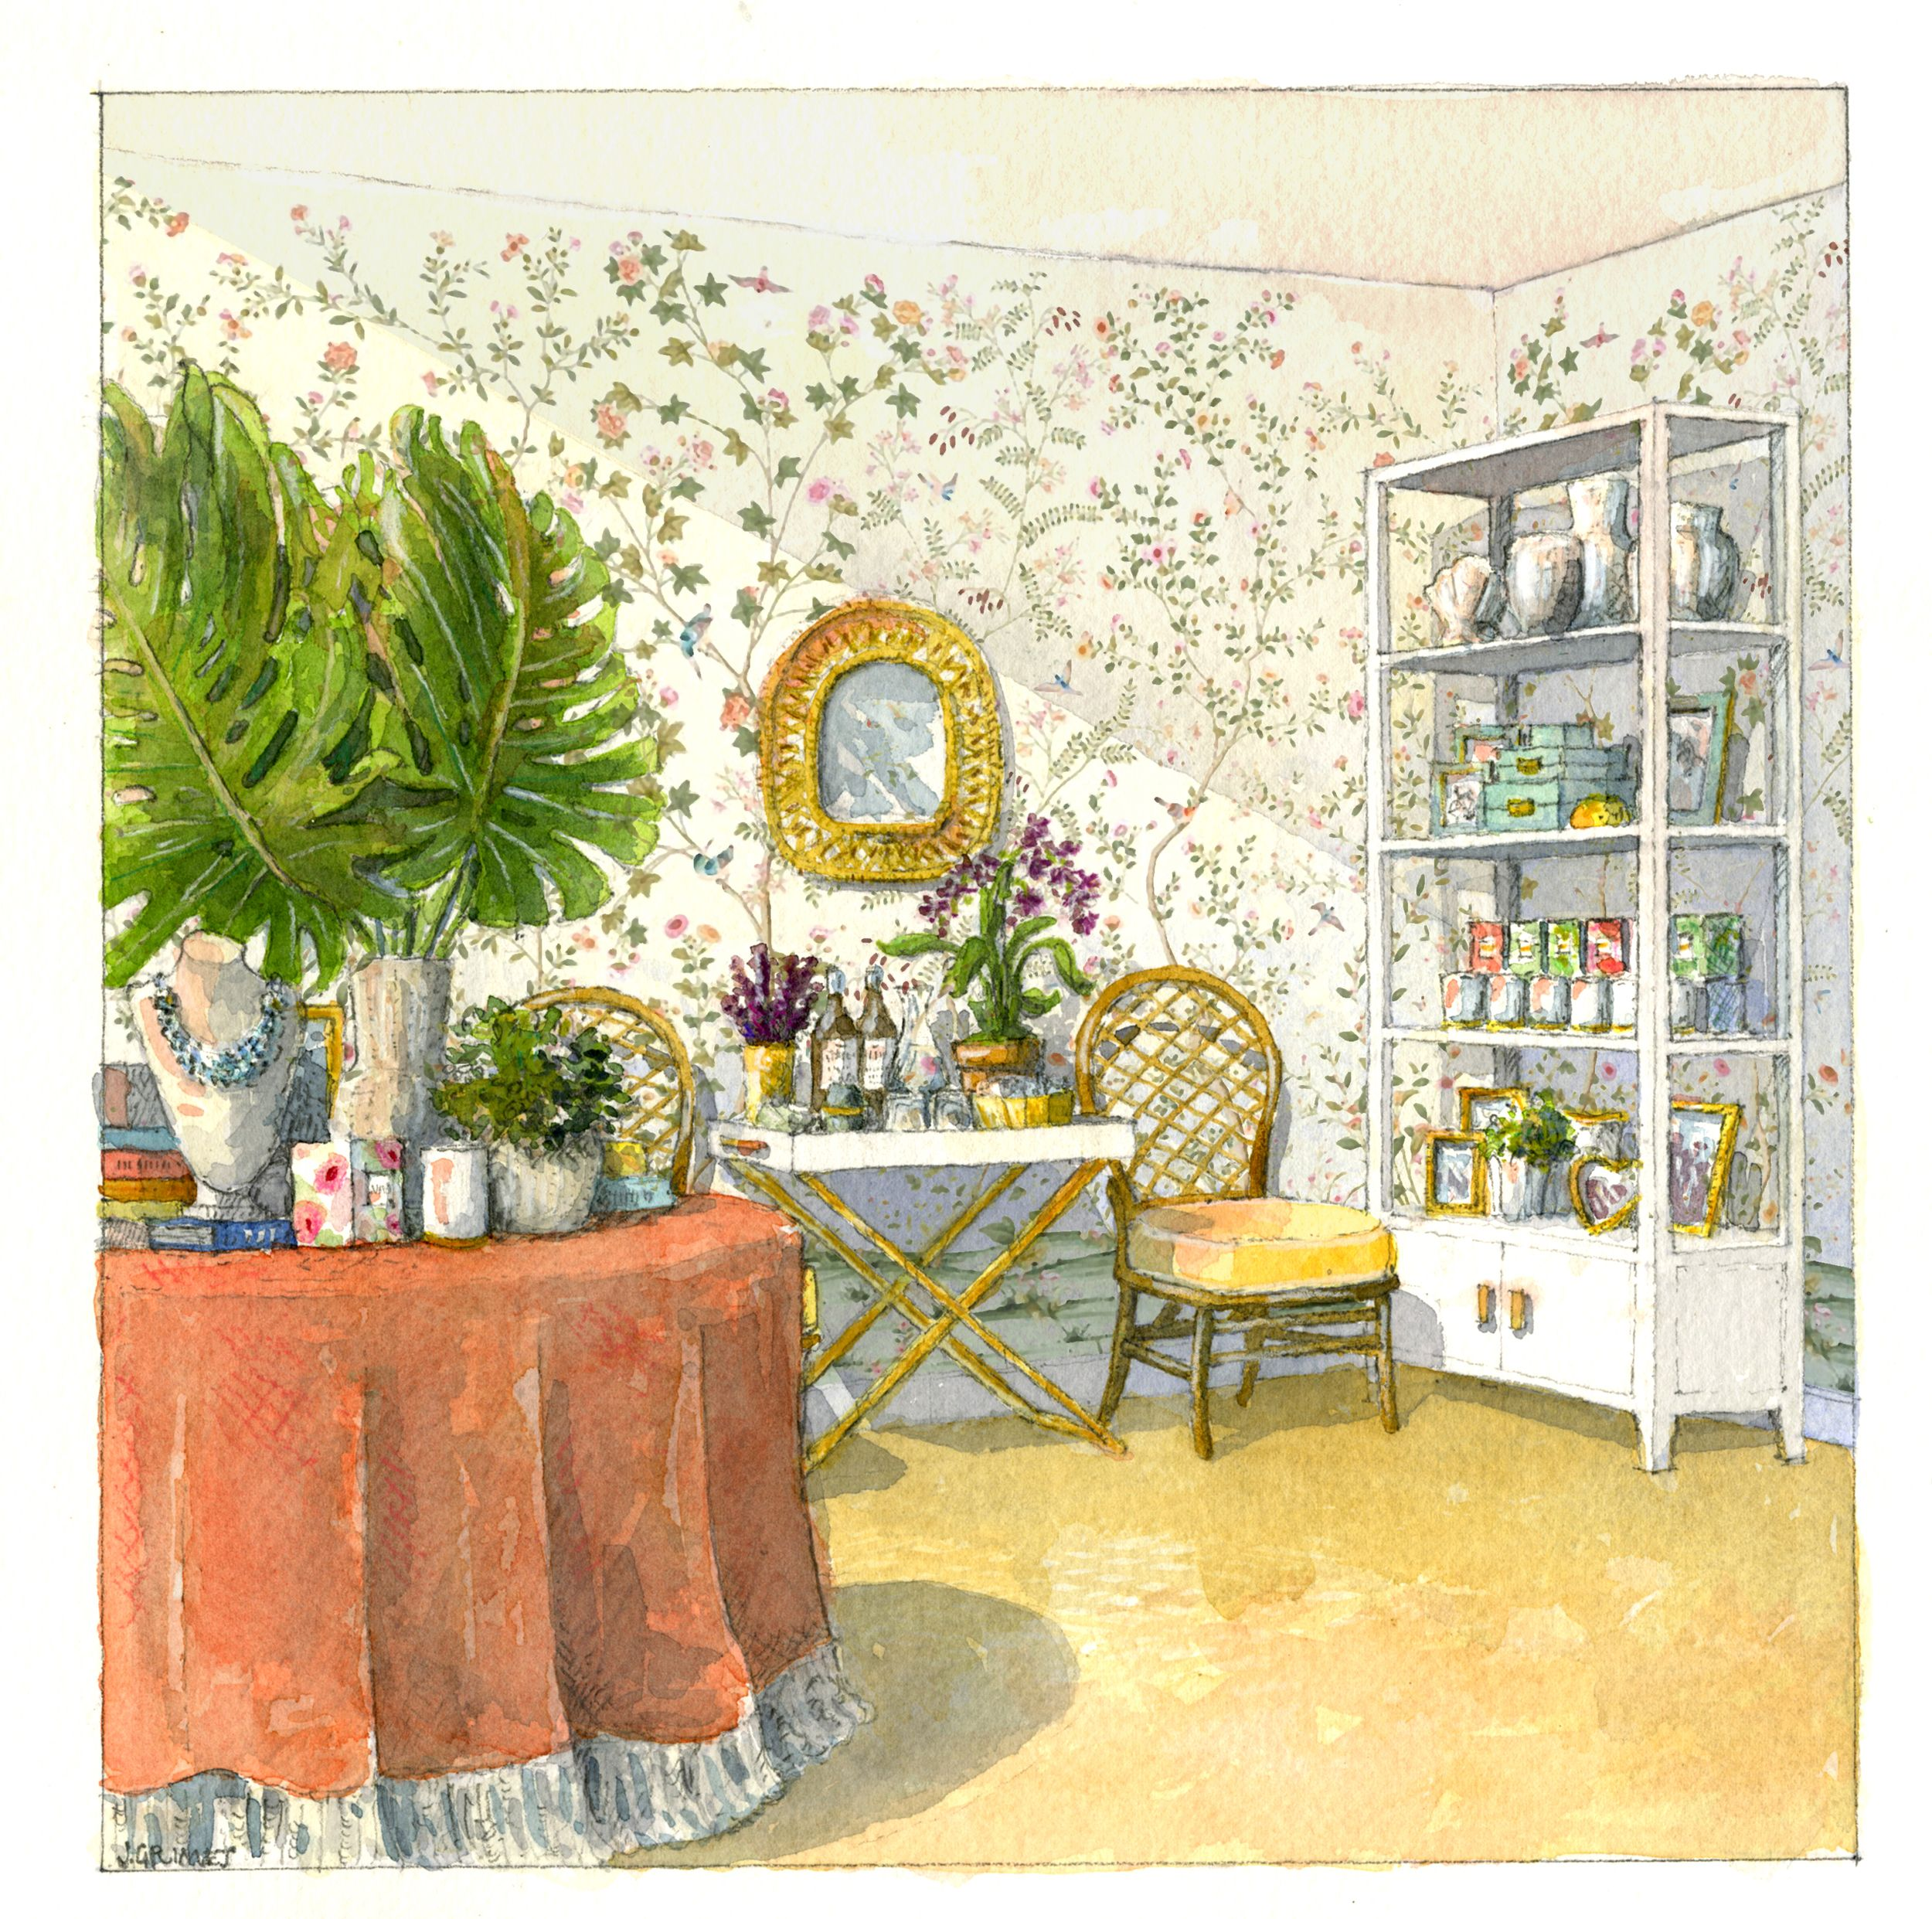 A Sketch Of The Interior Of Aerin Lauderu0027s New Palm Beach Shop.